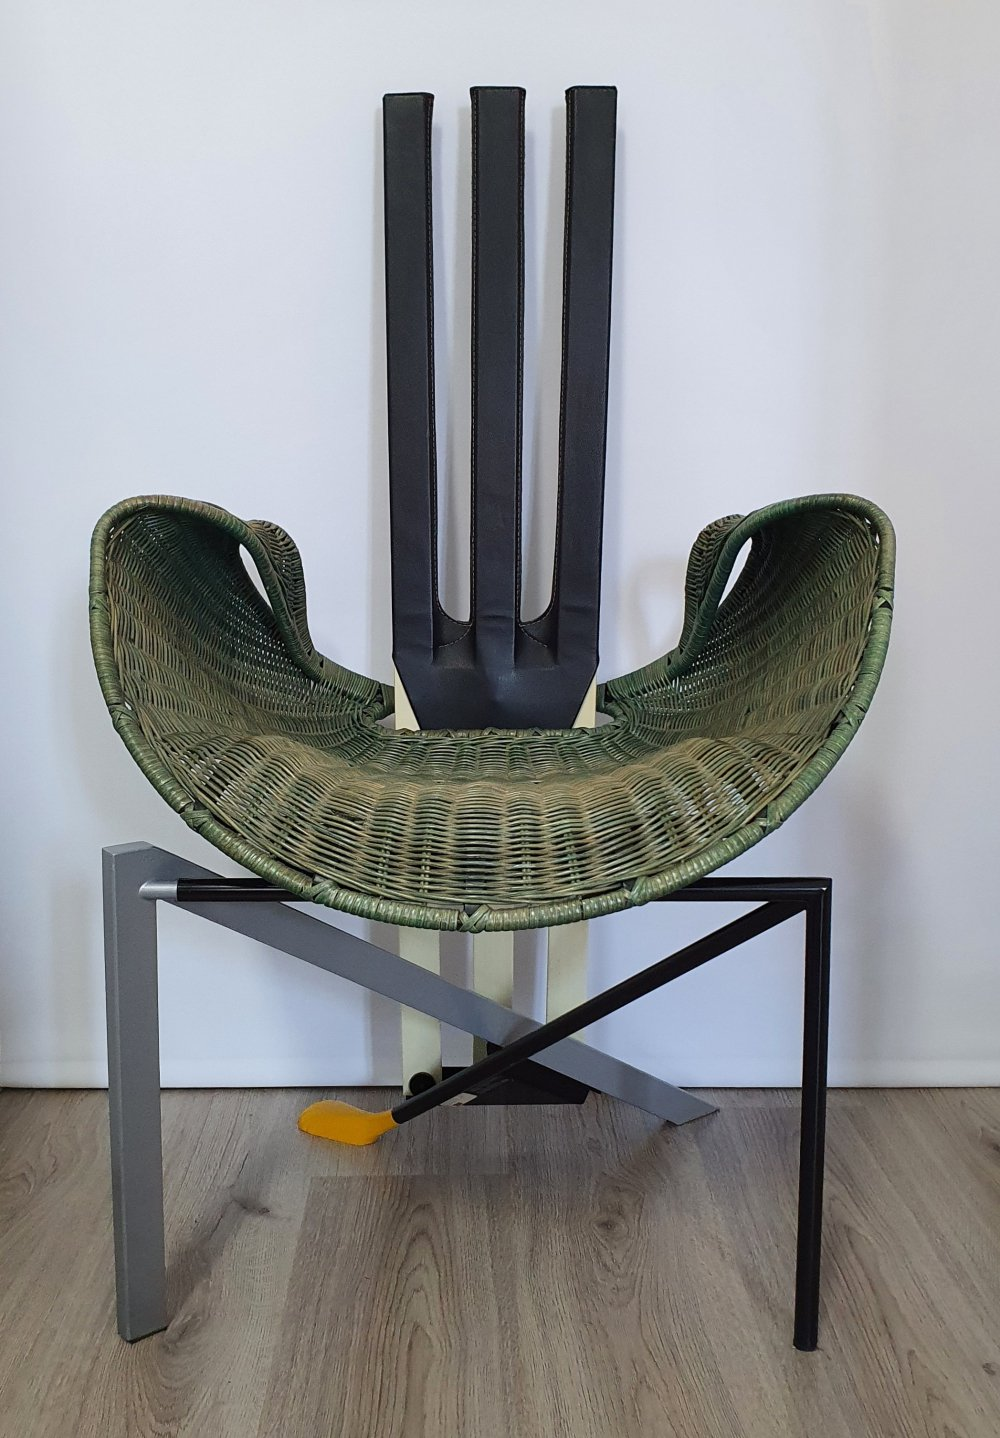 Documenta Chair by Paolo Deganello for Vitra, 1987